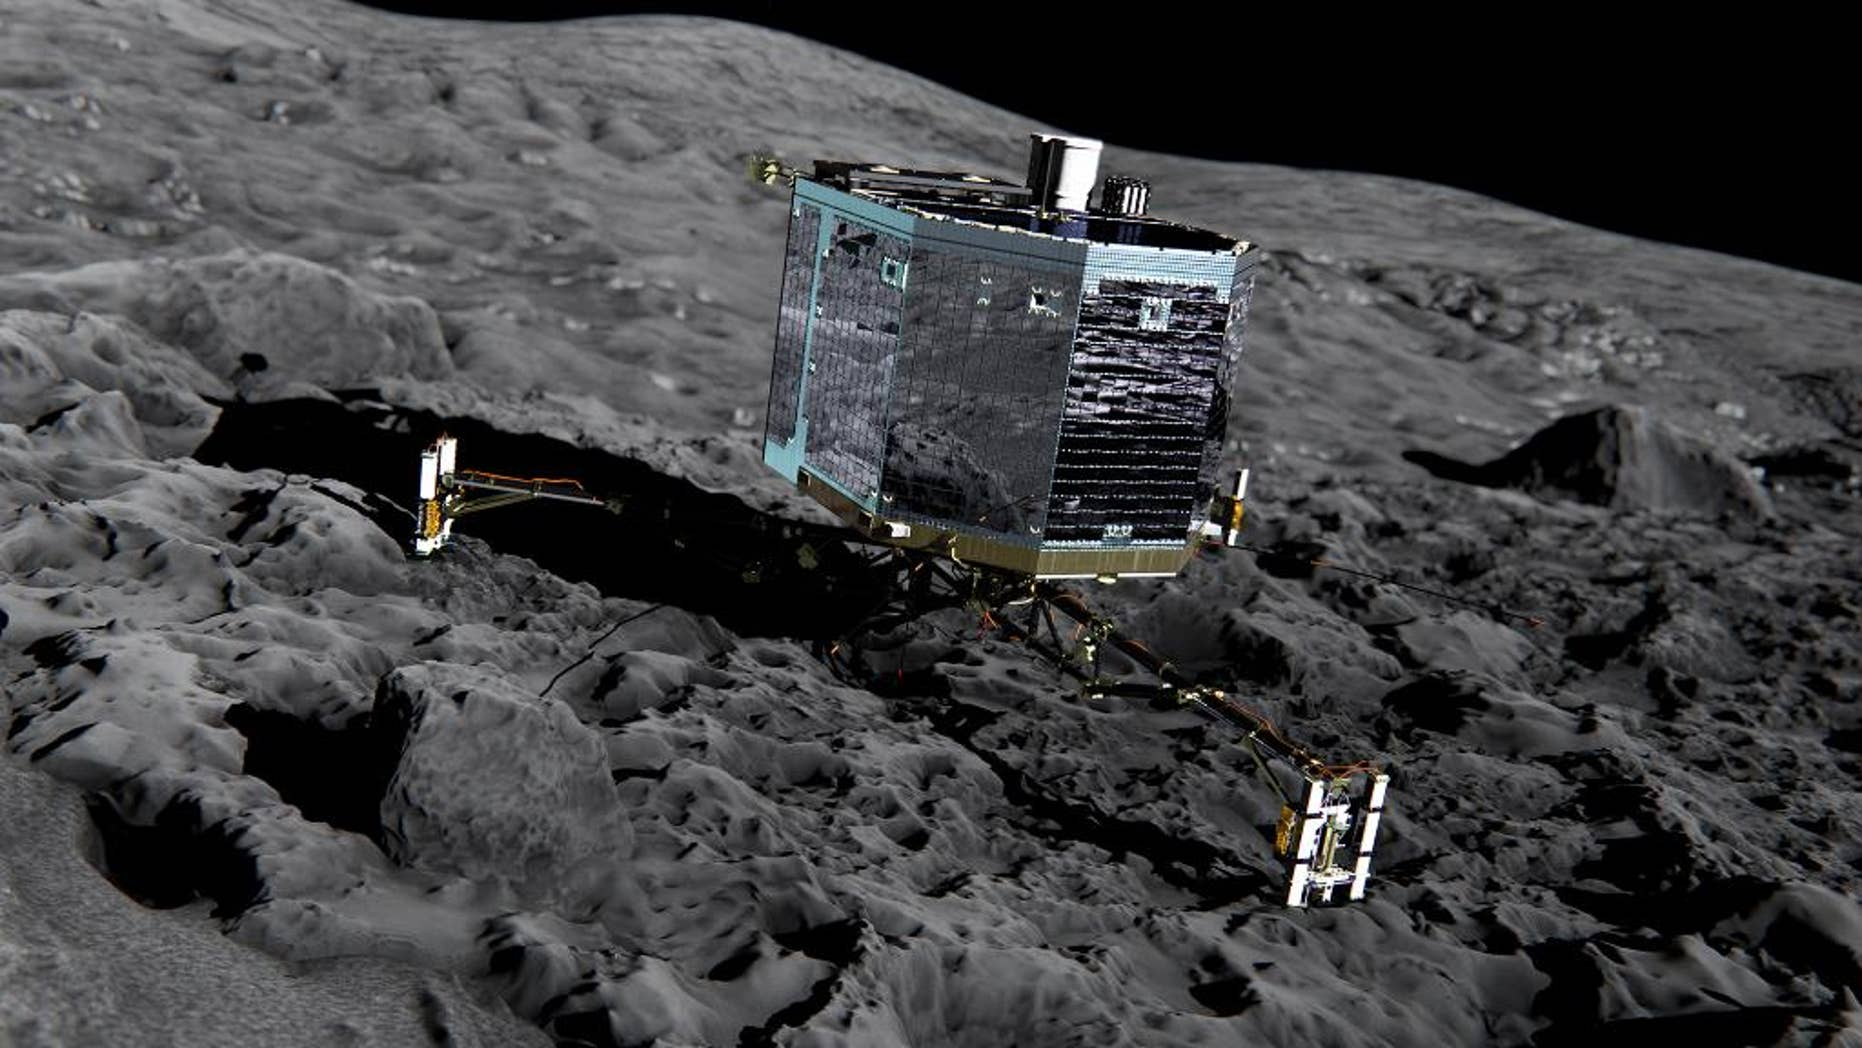 This artist impression  from  Dec. 2013  by ESA /ATG medialab ,  publicly provided by the European Space Agency,  ESA, shows Rosetta's lander Philae (front view) on the surface of comet 67P/Churyumov-Gerasimenko. The comet lander Philae has awakened from a seven-month hibernation and managed to communicate with Earth for more than a minute, the European Space Agency said Sunday June 14, 2015. The probe became the first spacecraft to land on a comet when it touched down on the icy surface of 67P/Churyumov-Gerasimenko in November. Shortly after its historic landing, Philae managed to conduct experiments and send data to Earth for about 60 hours before its batteries were depleted and it was forced into hibernation. (ESA/ATG medialab/ESA  via AP)